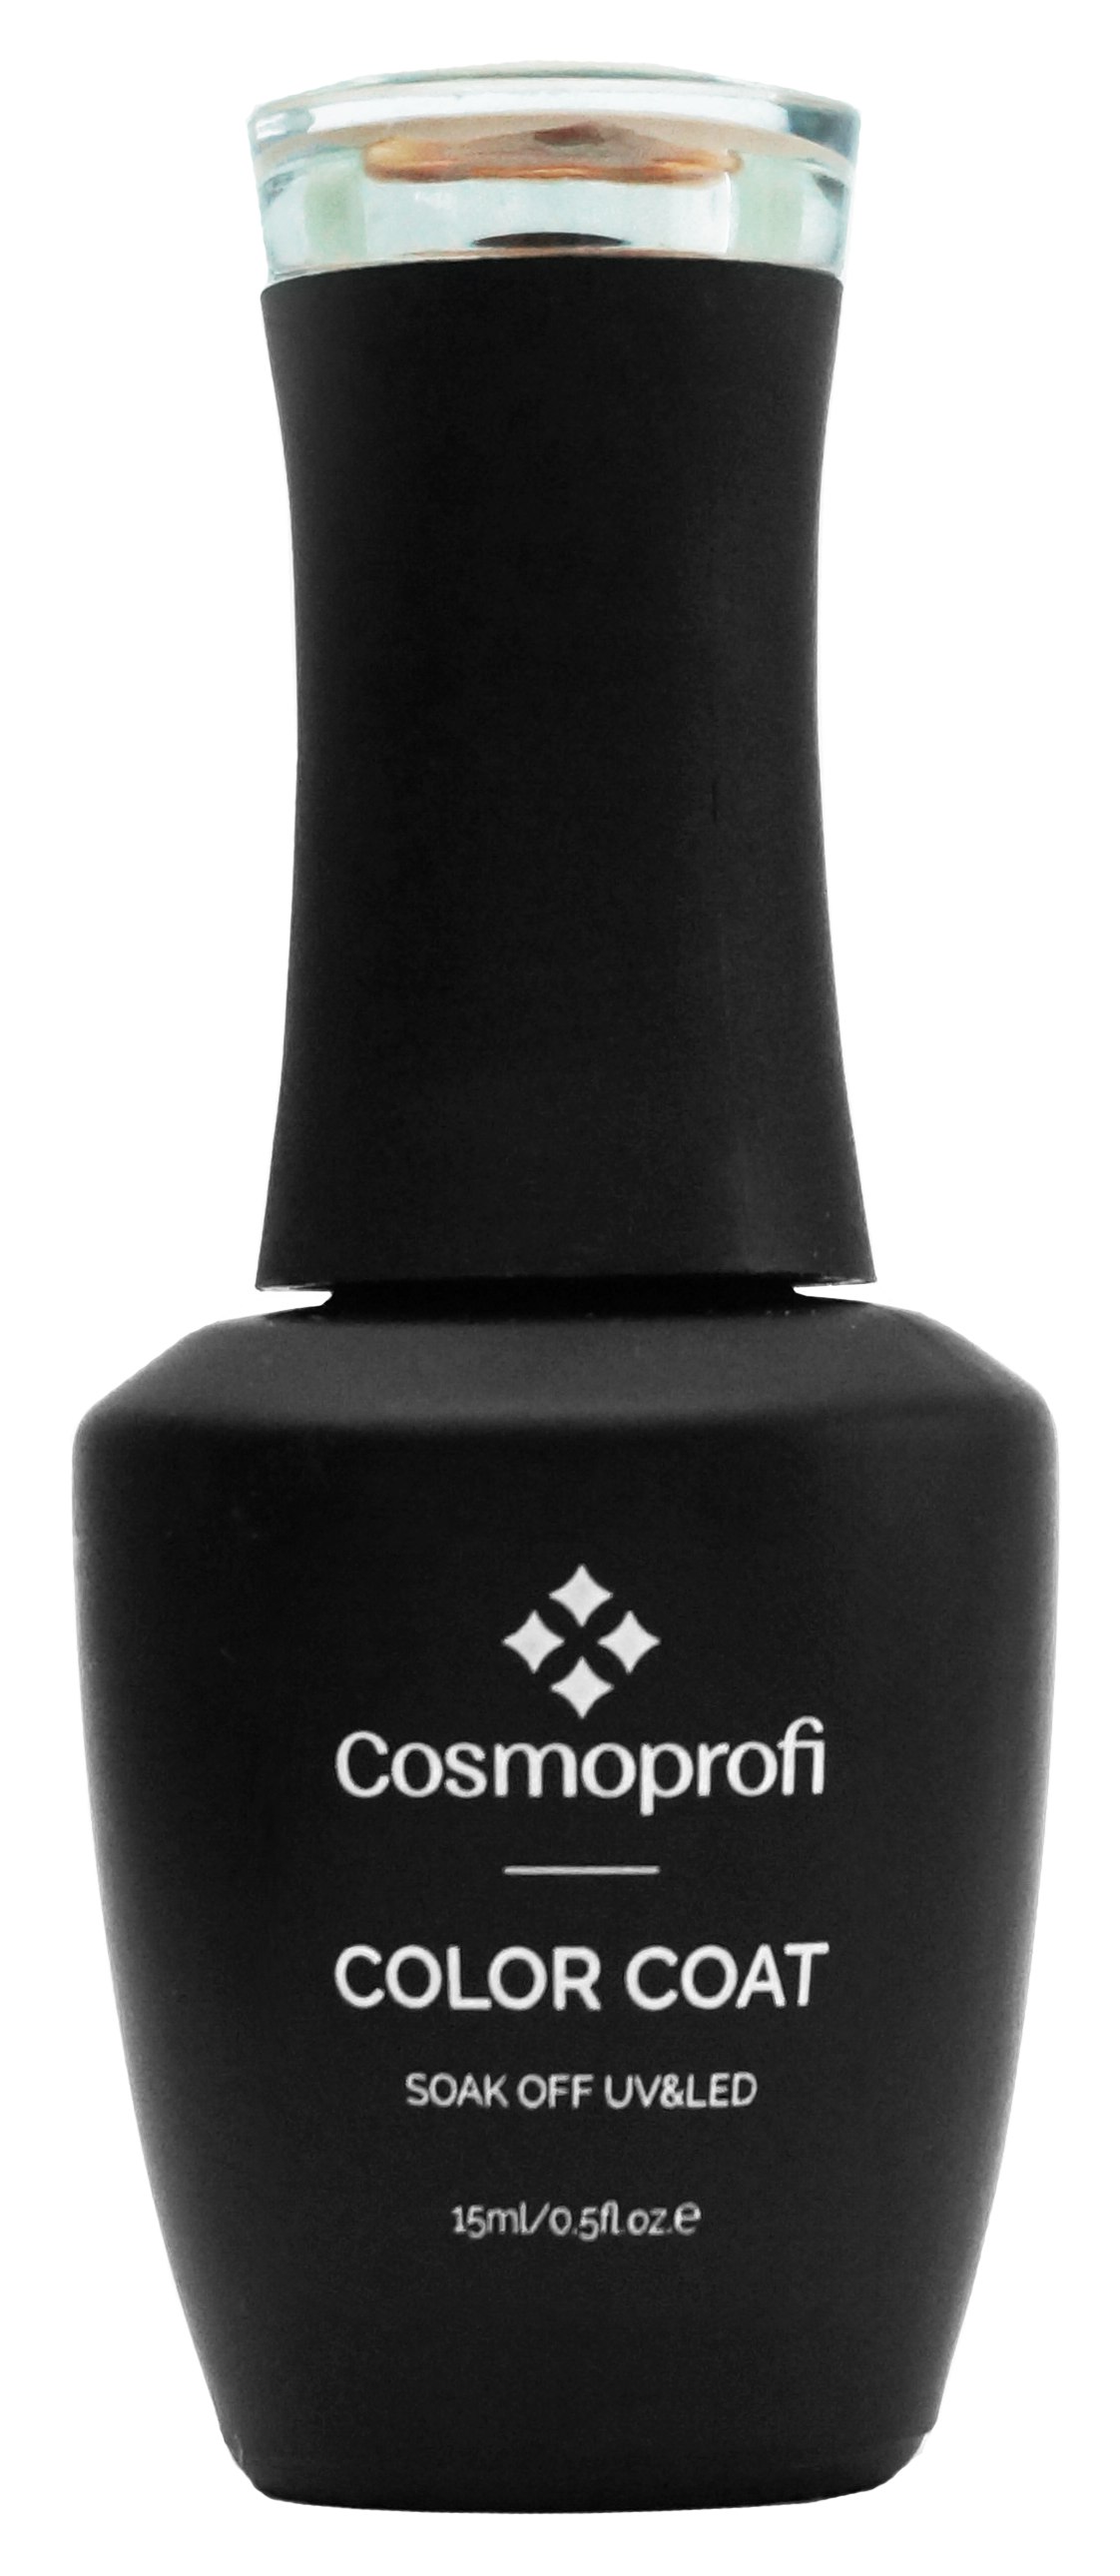 Гель-лак Cosmoprofi, Color coat № 451, 15 мл